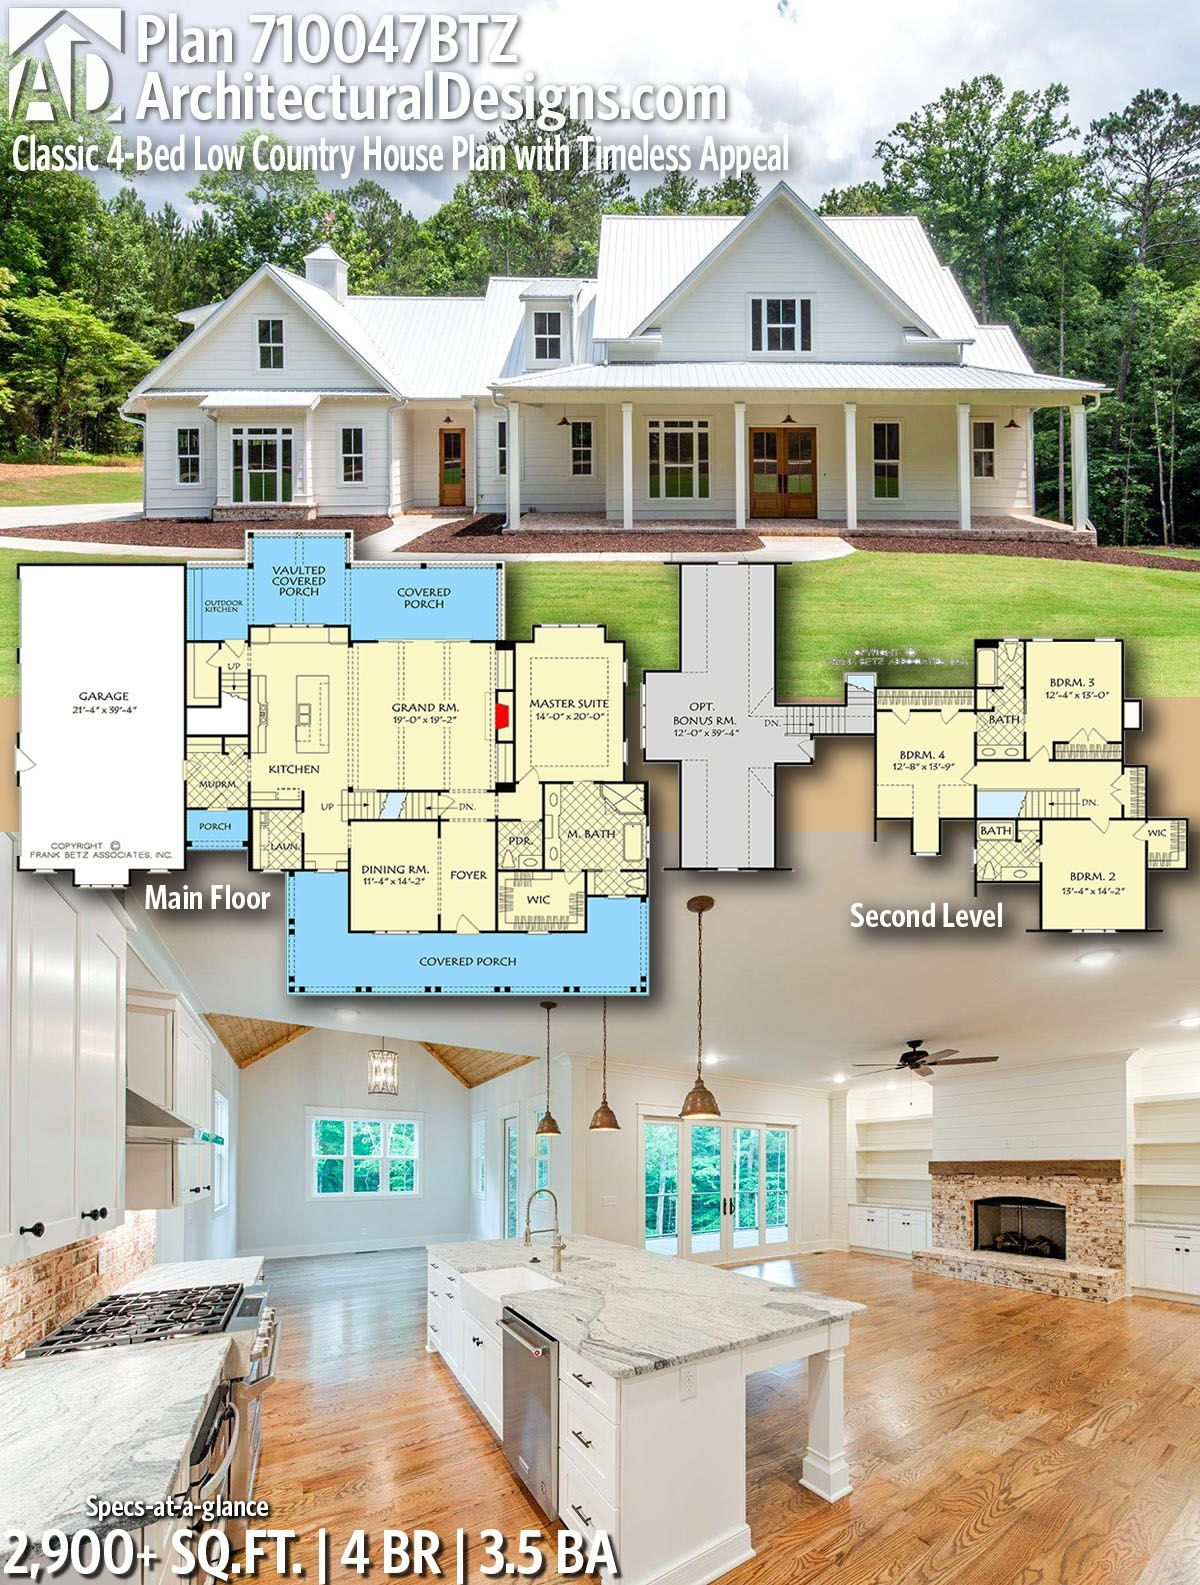 Architectural Designs Home Plan 710047btz Gives You 4 Bedrooms 3 5 Baths And 2 900 Sq Ft Ready House Plans Farmhouse Country House Plans Country House Plan